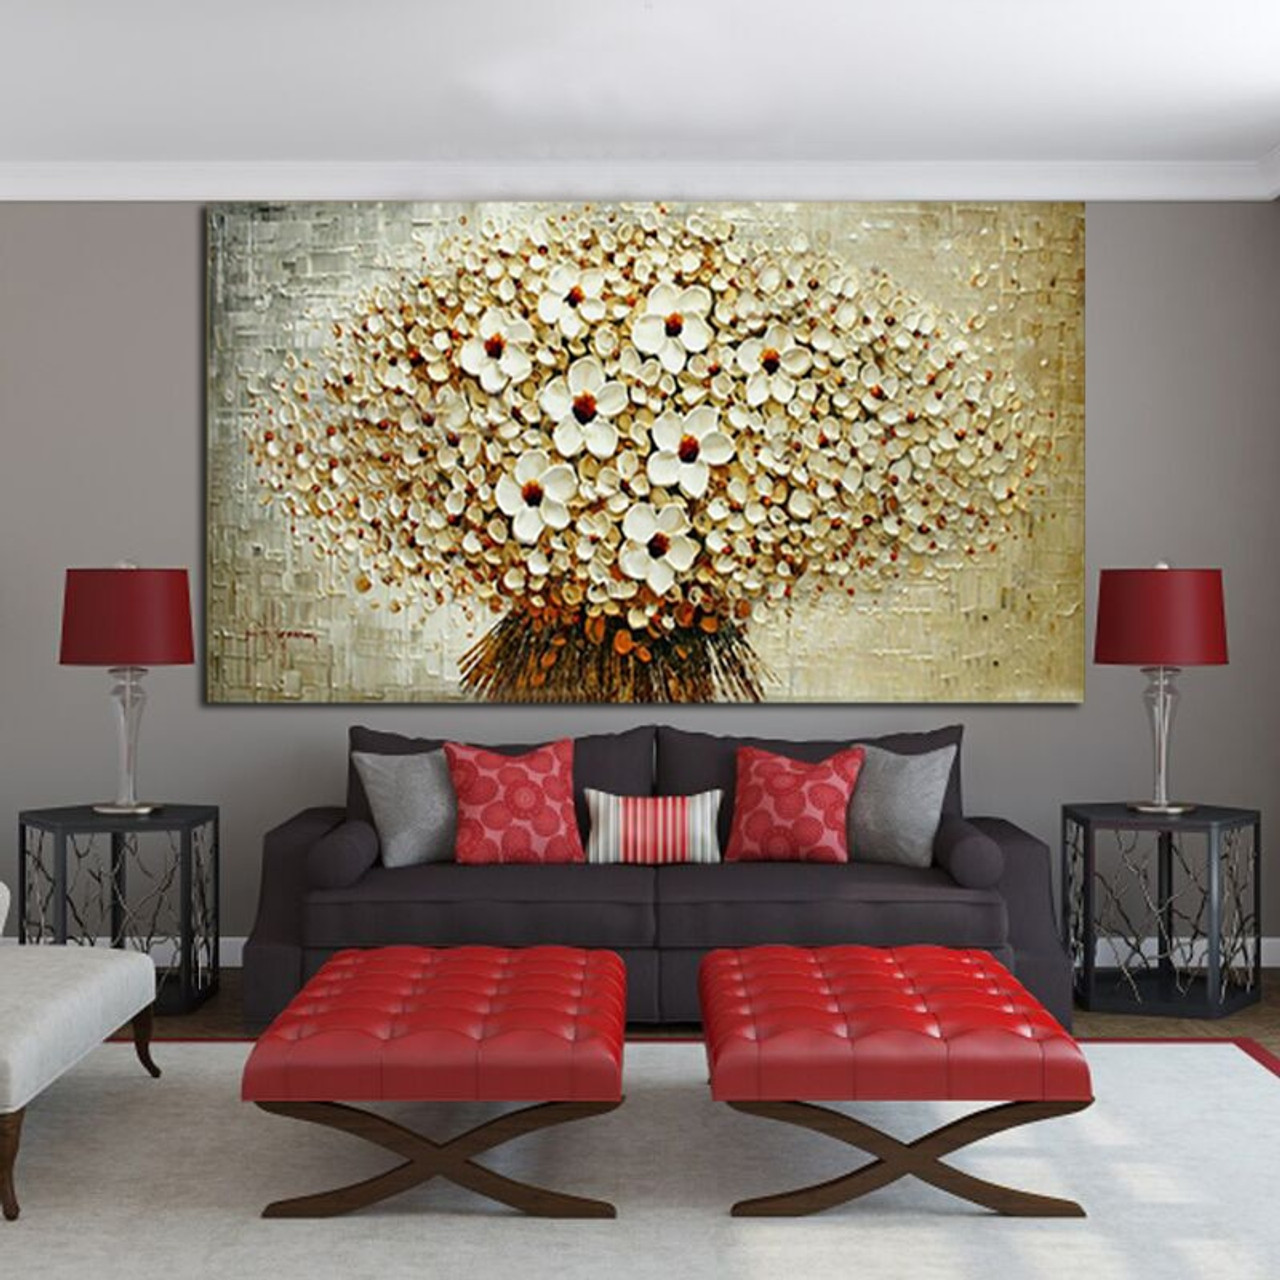 100 Handmade Modern Abstract Oil Painting On Canvas A Bunch Of Beige Flowers Modern Home Living Room Wall Decor Art Picture Onshopdeals Com